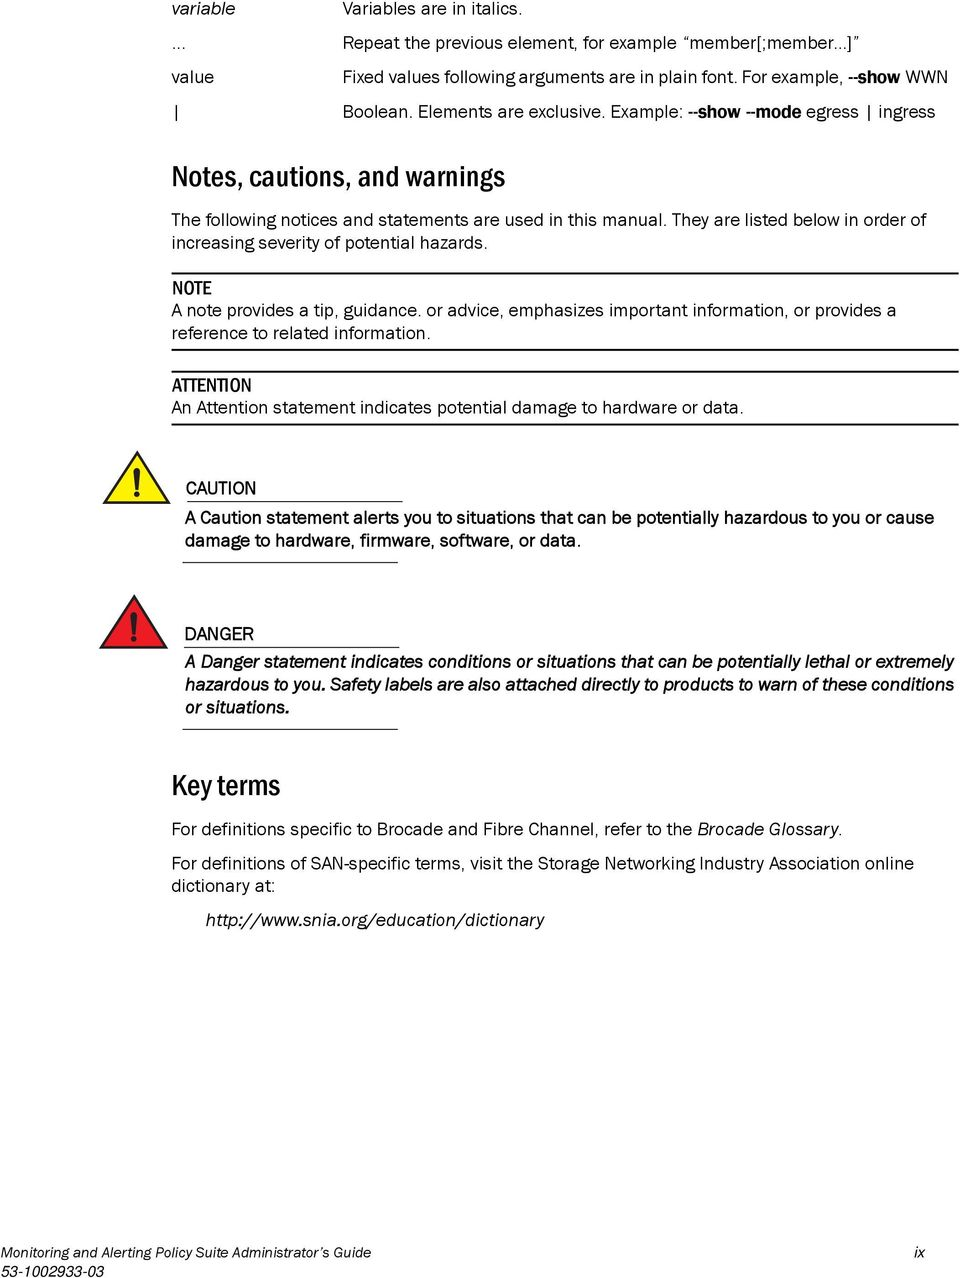 Monitoring and Alerting Policy Suite - PDF